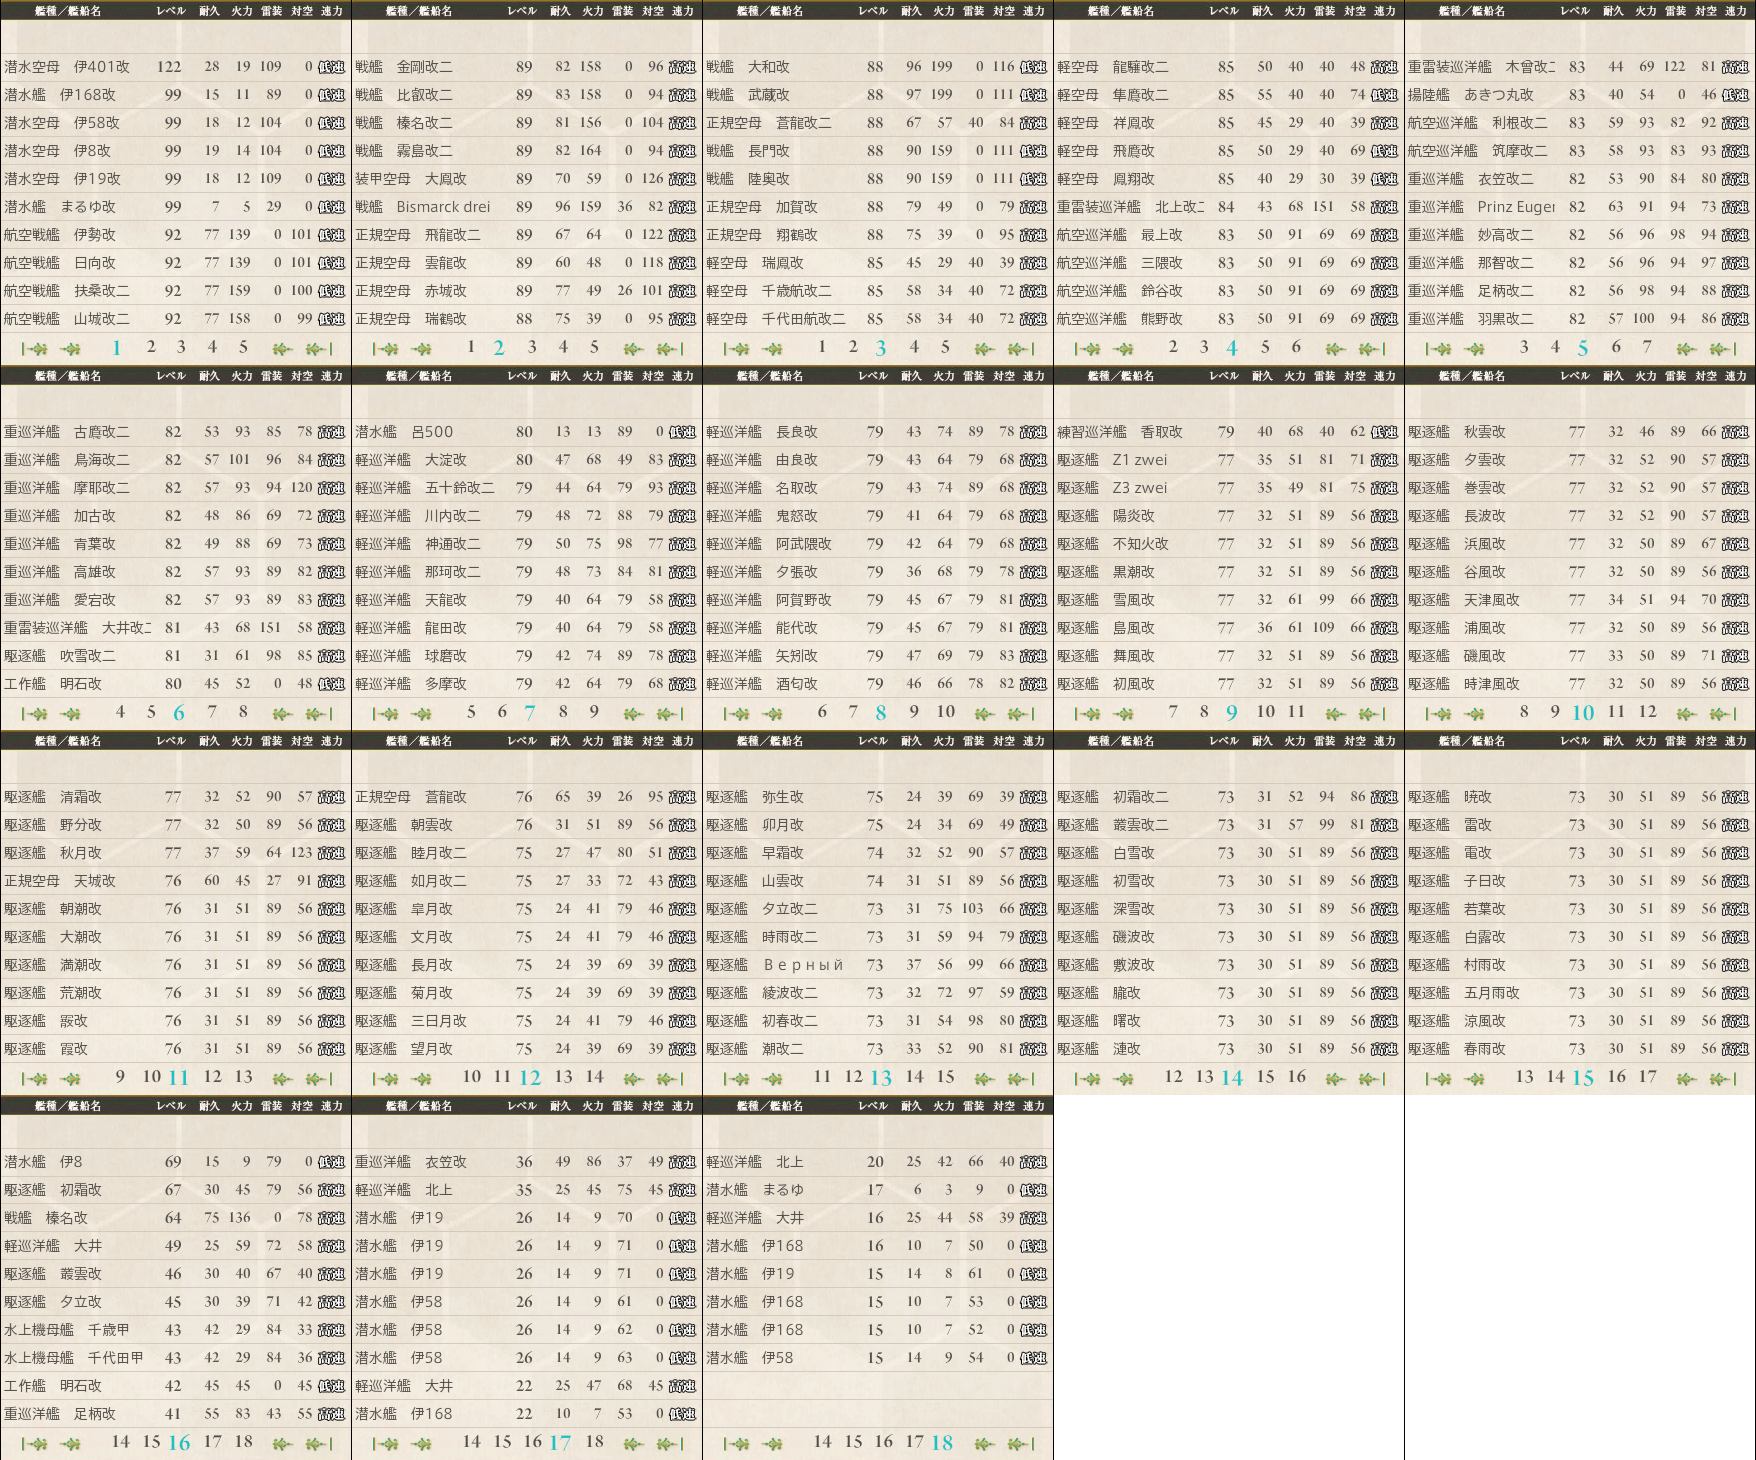 data.kancolle.levelsort.20150426.png